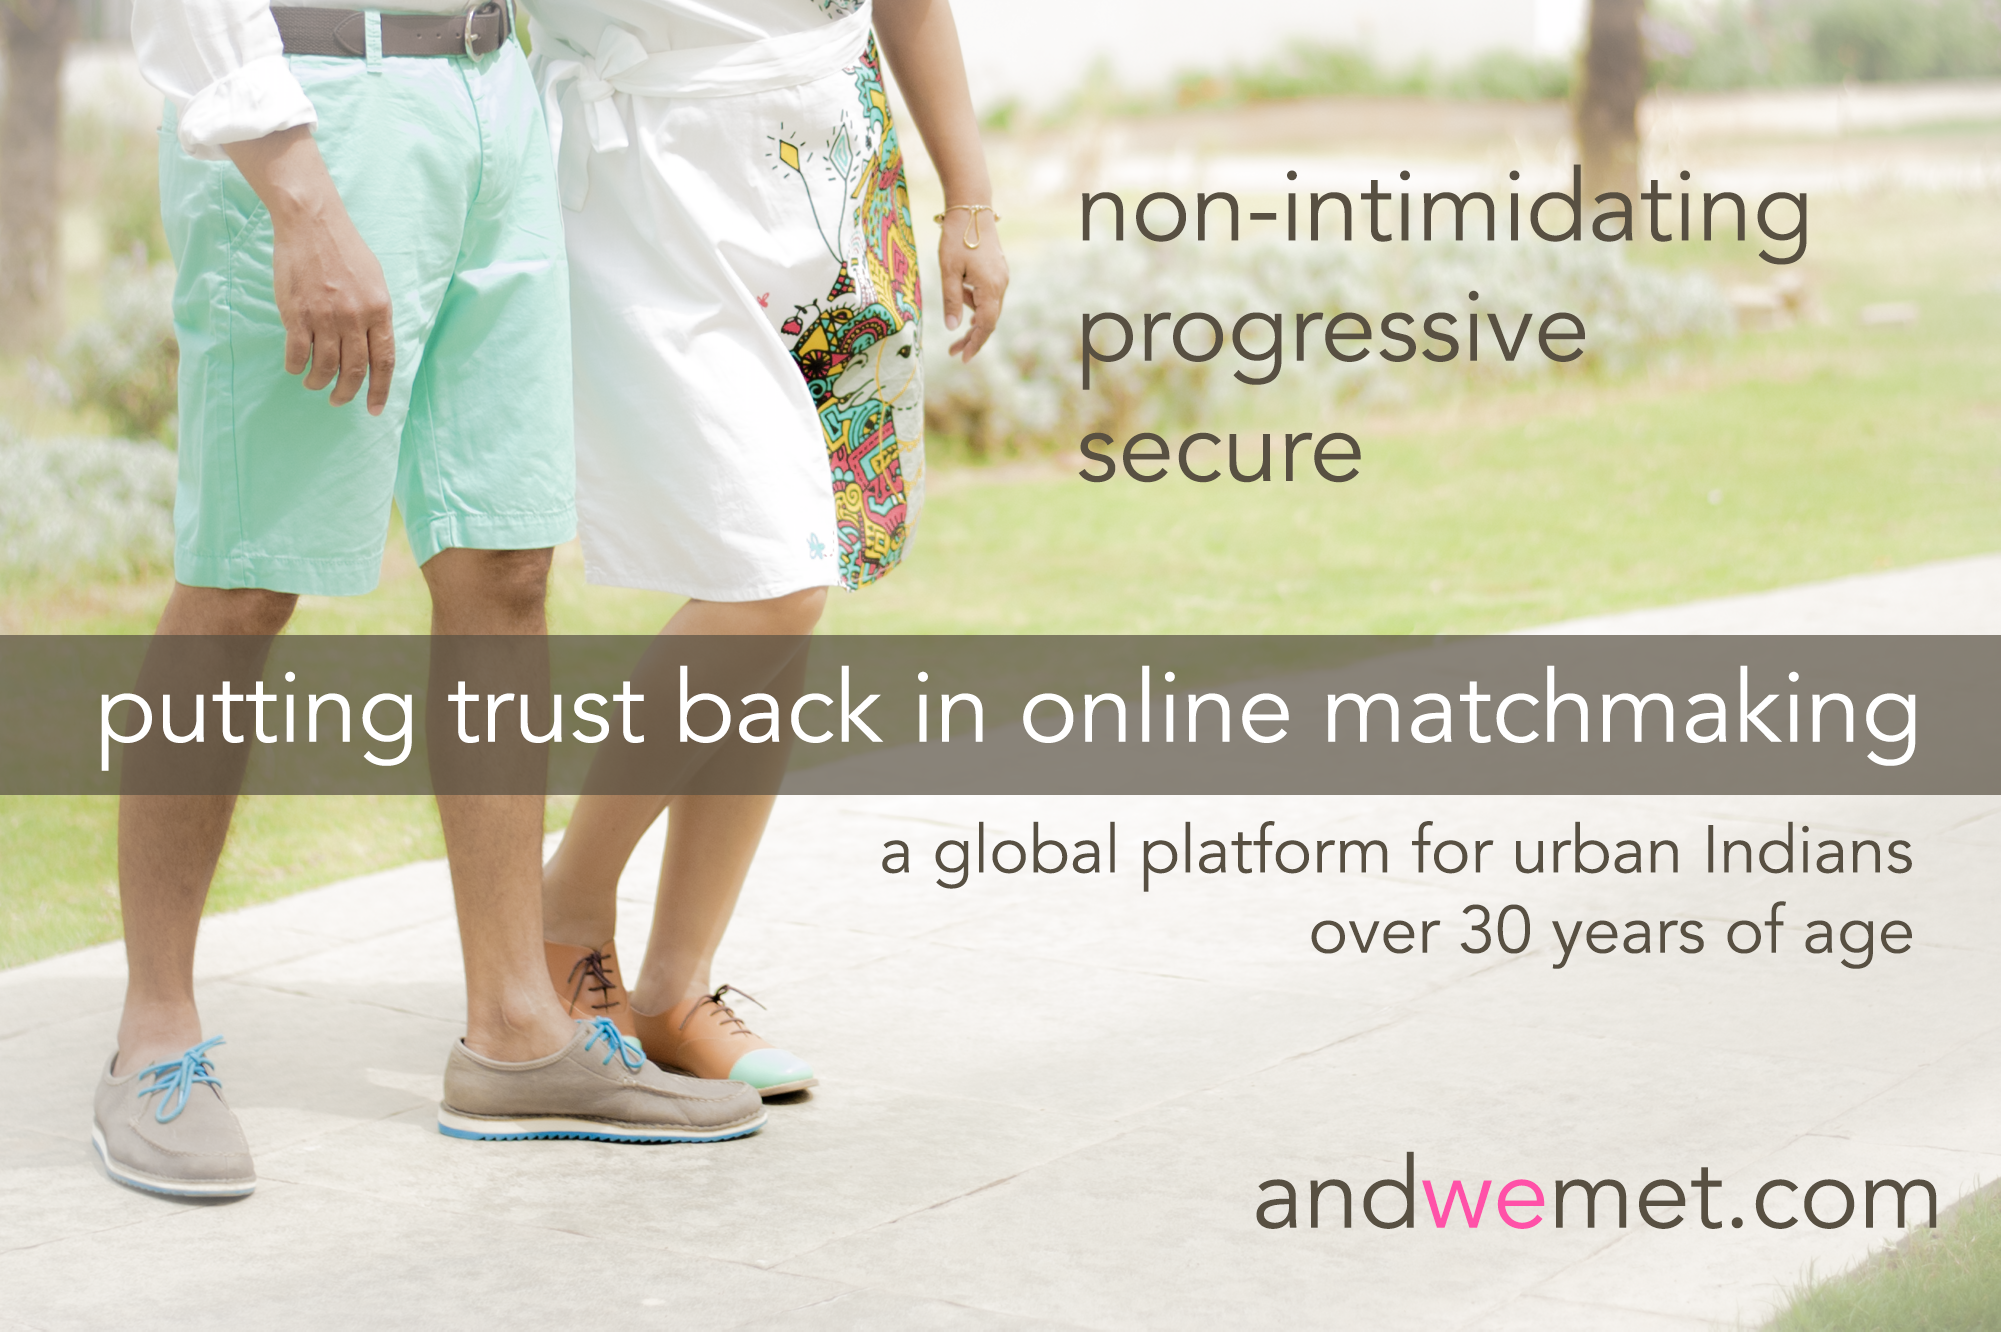 matchmaking online Singapore